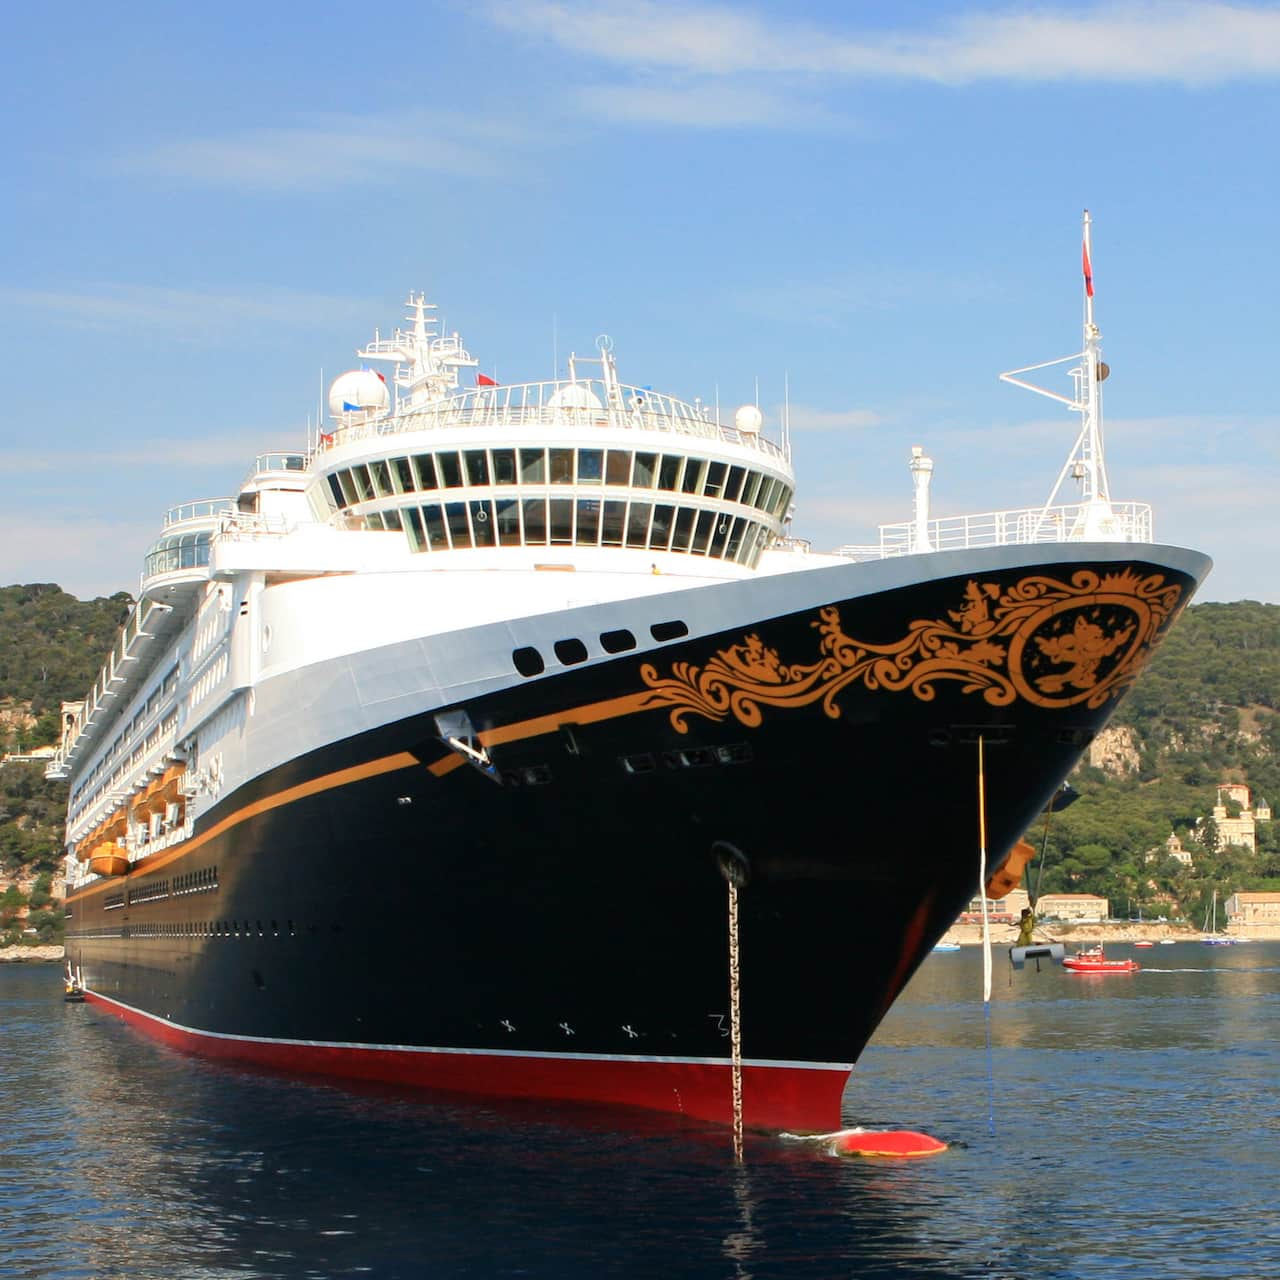 The Disney Magic cruise ship in a harbor